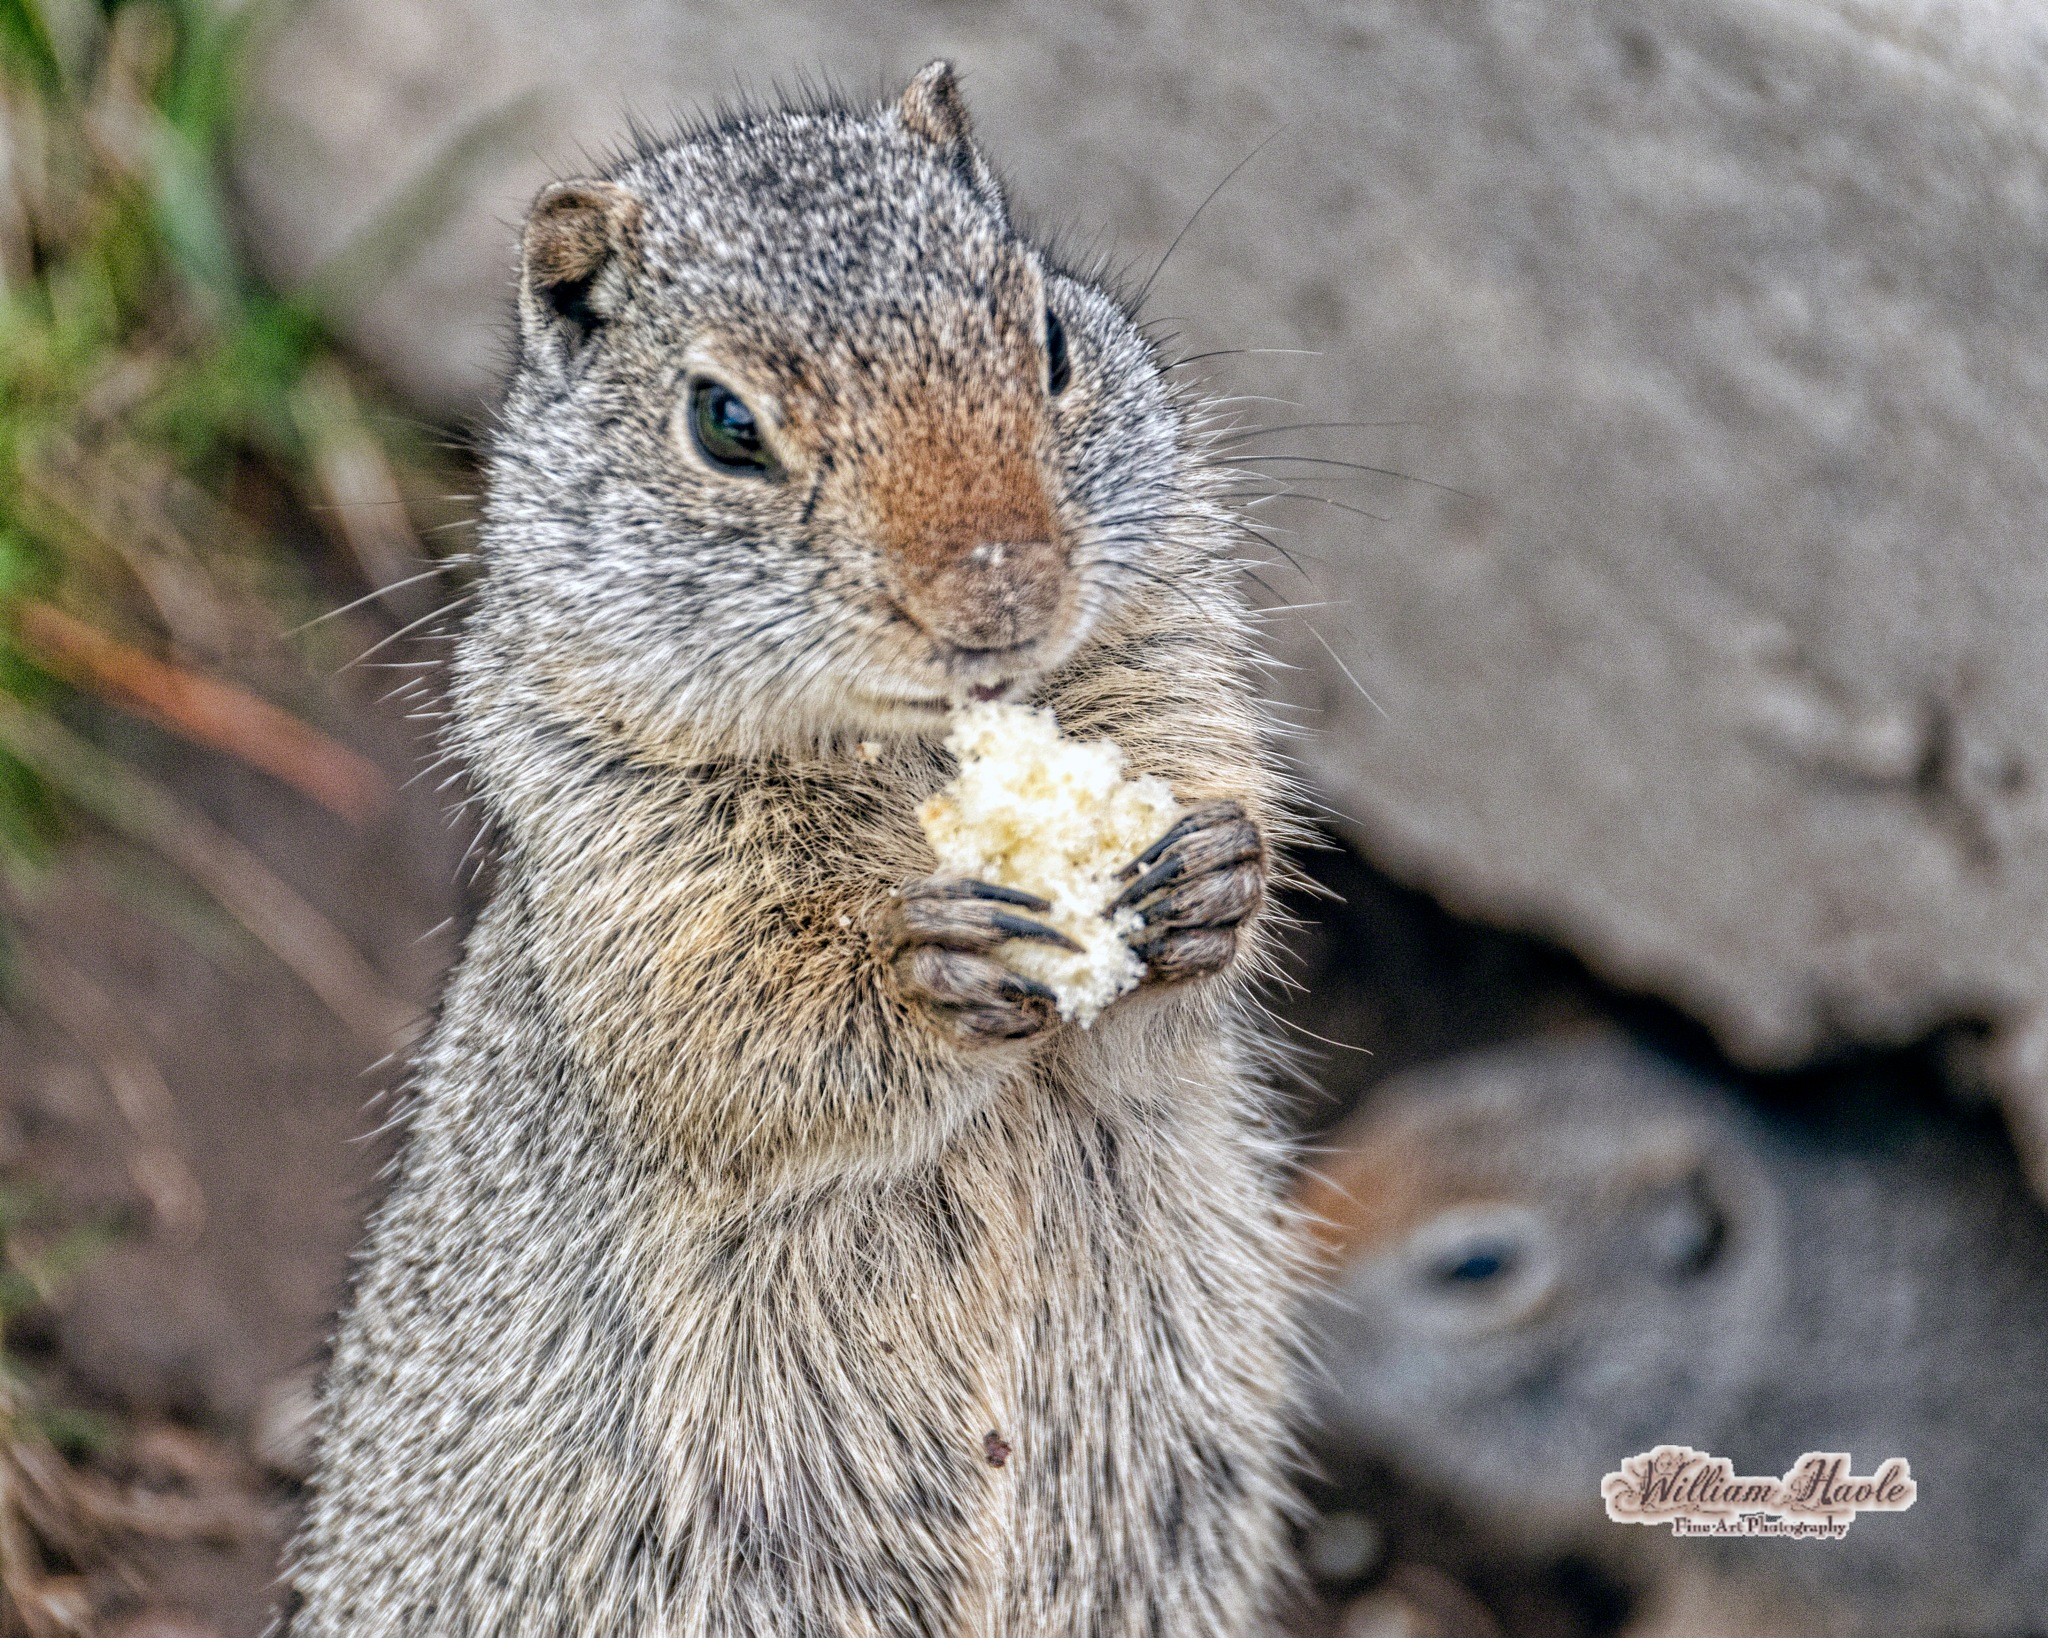 Ground Squarrel Eating by Bill Havle